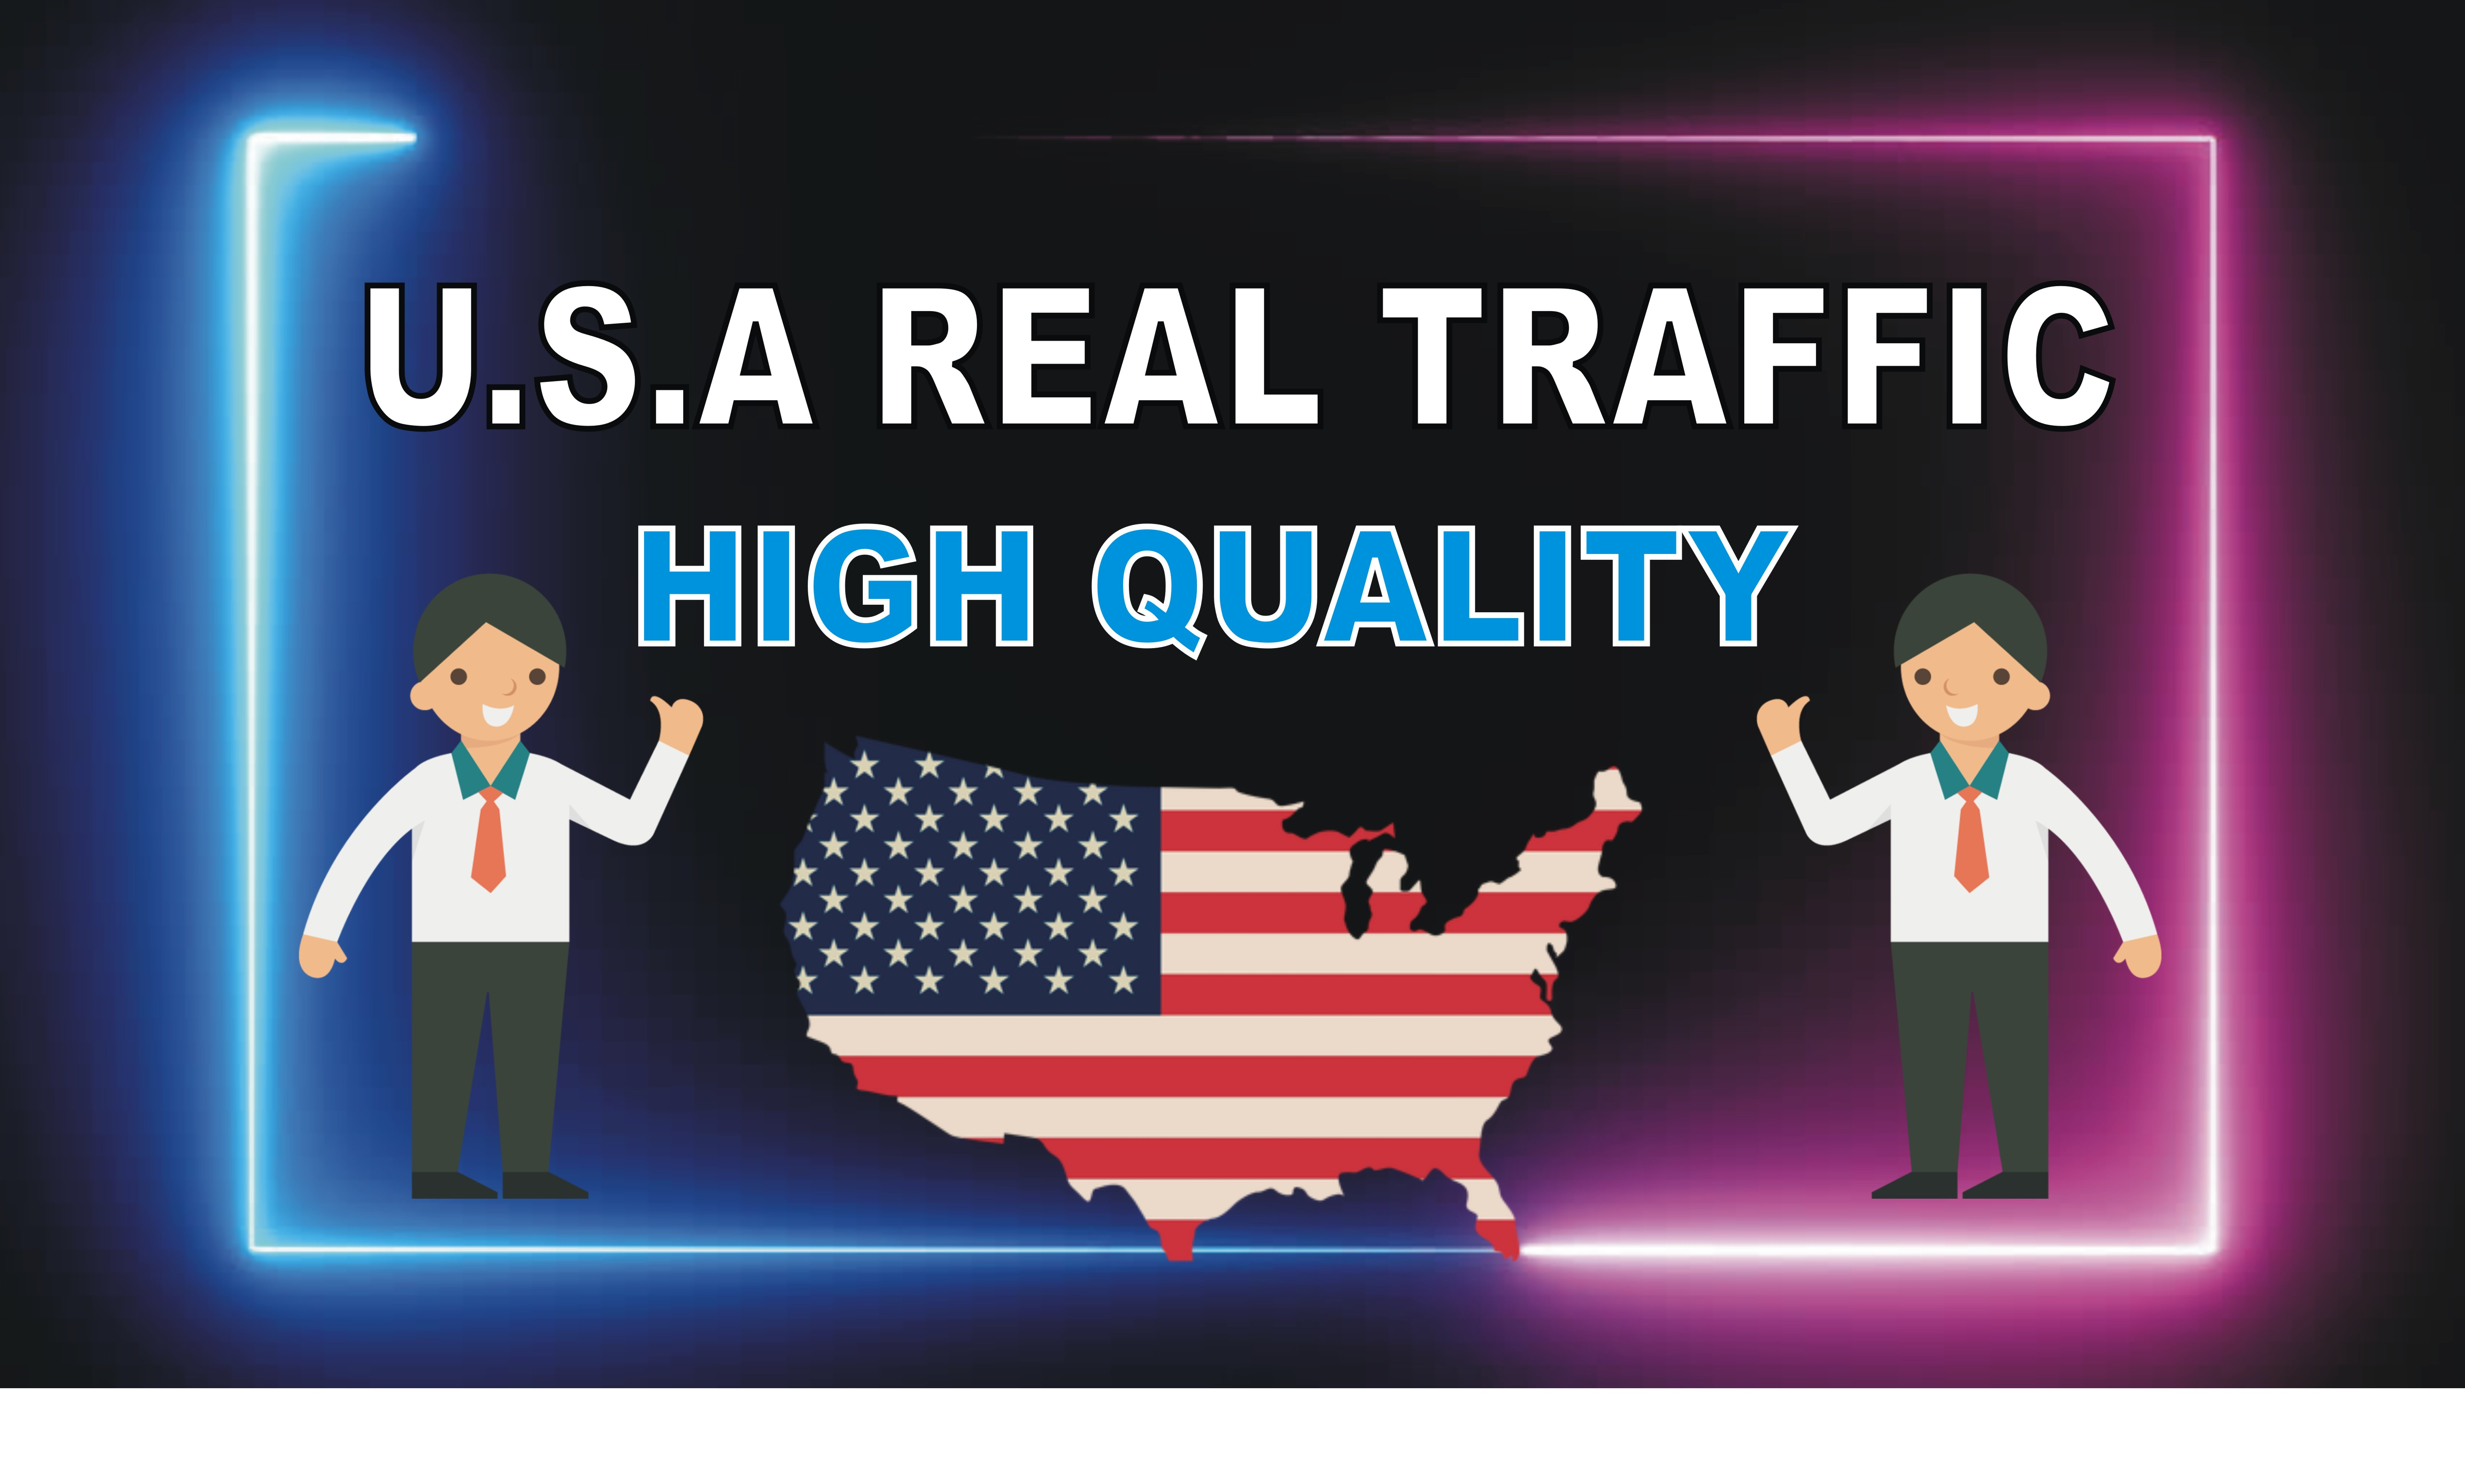 keyword target U.S.A UNLIMITED website traffic with low bounce rate